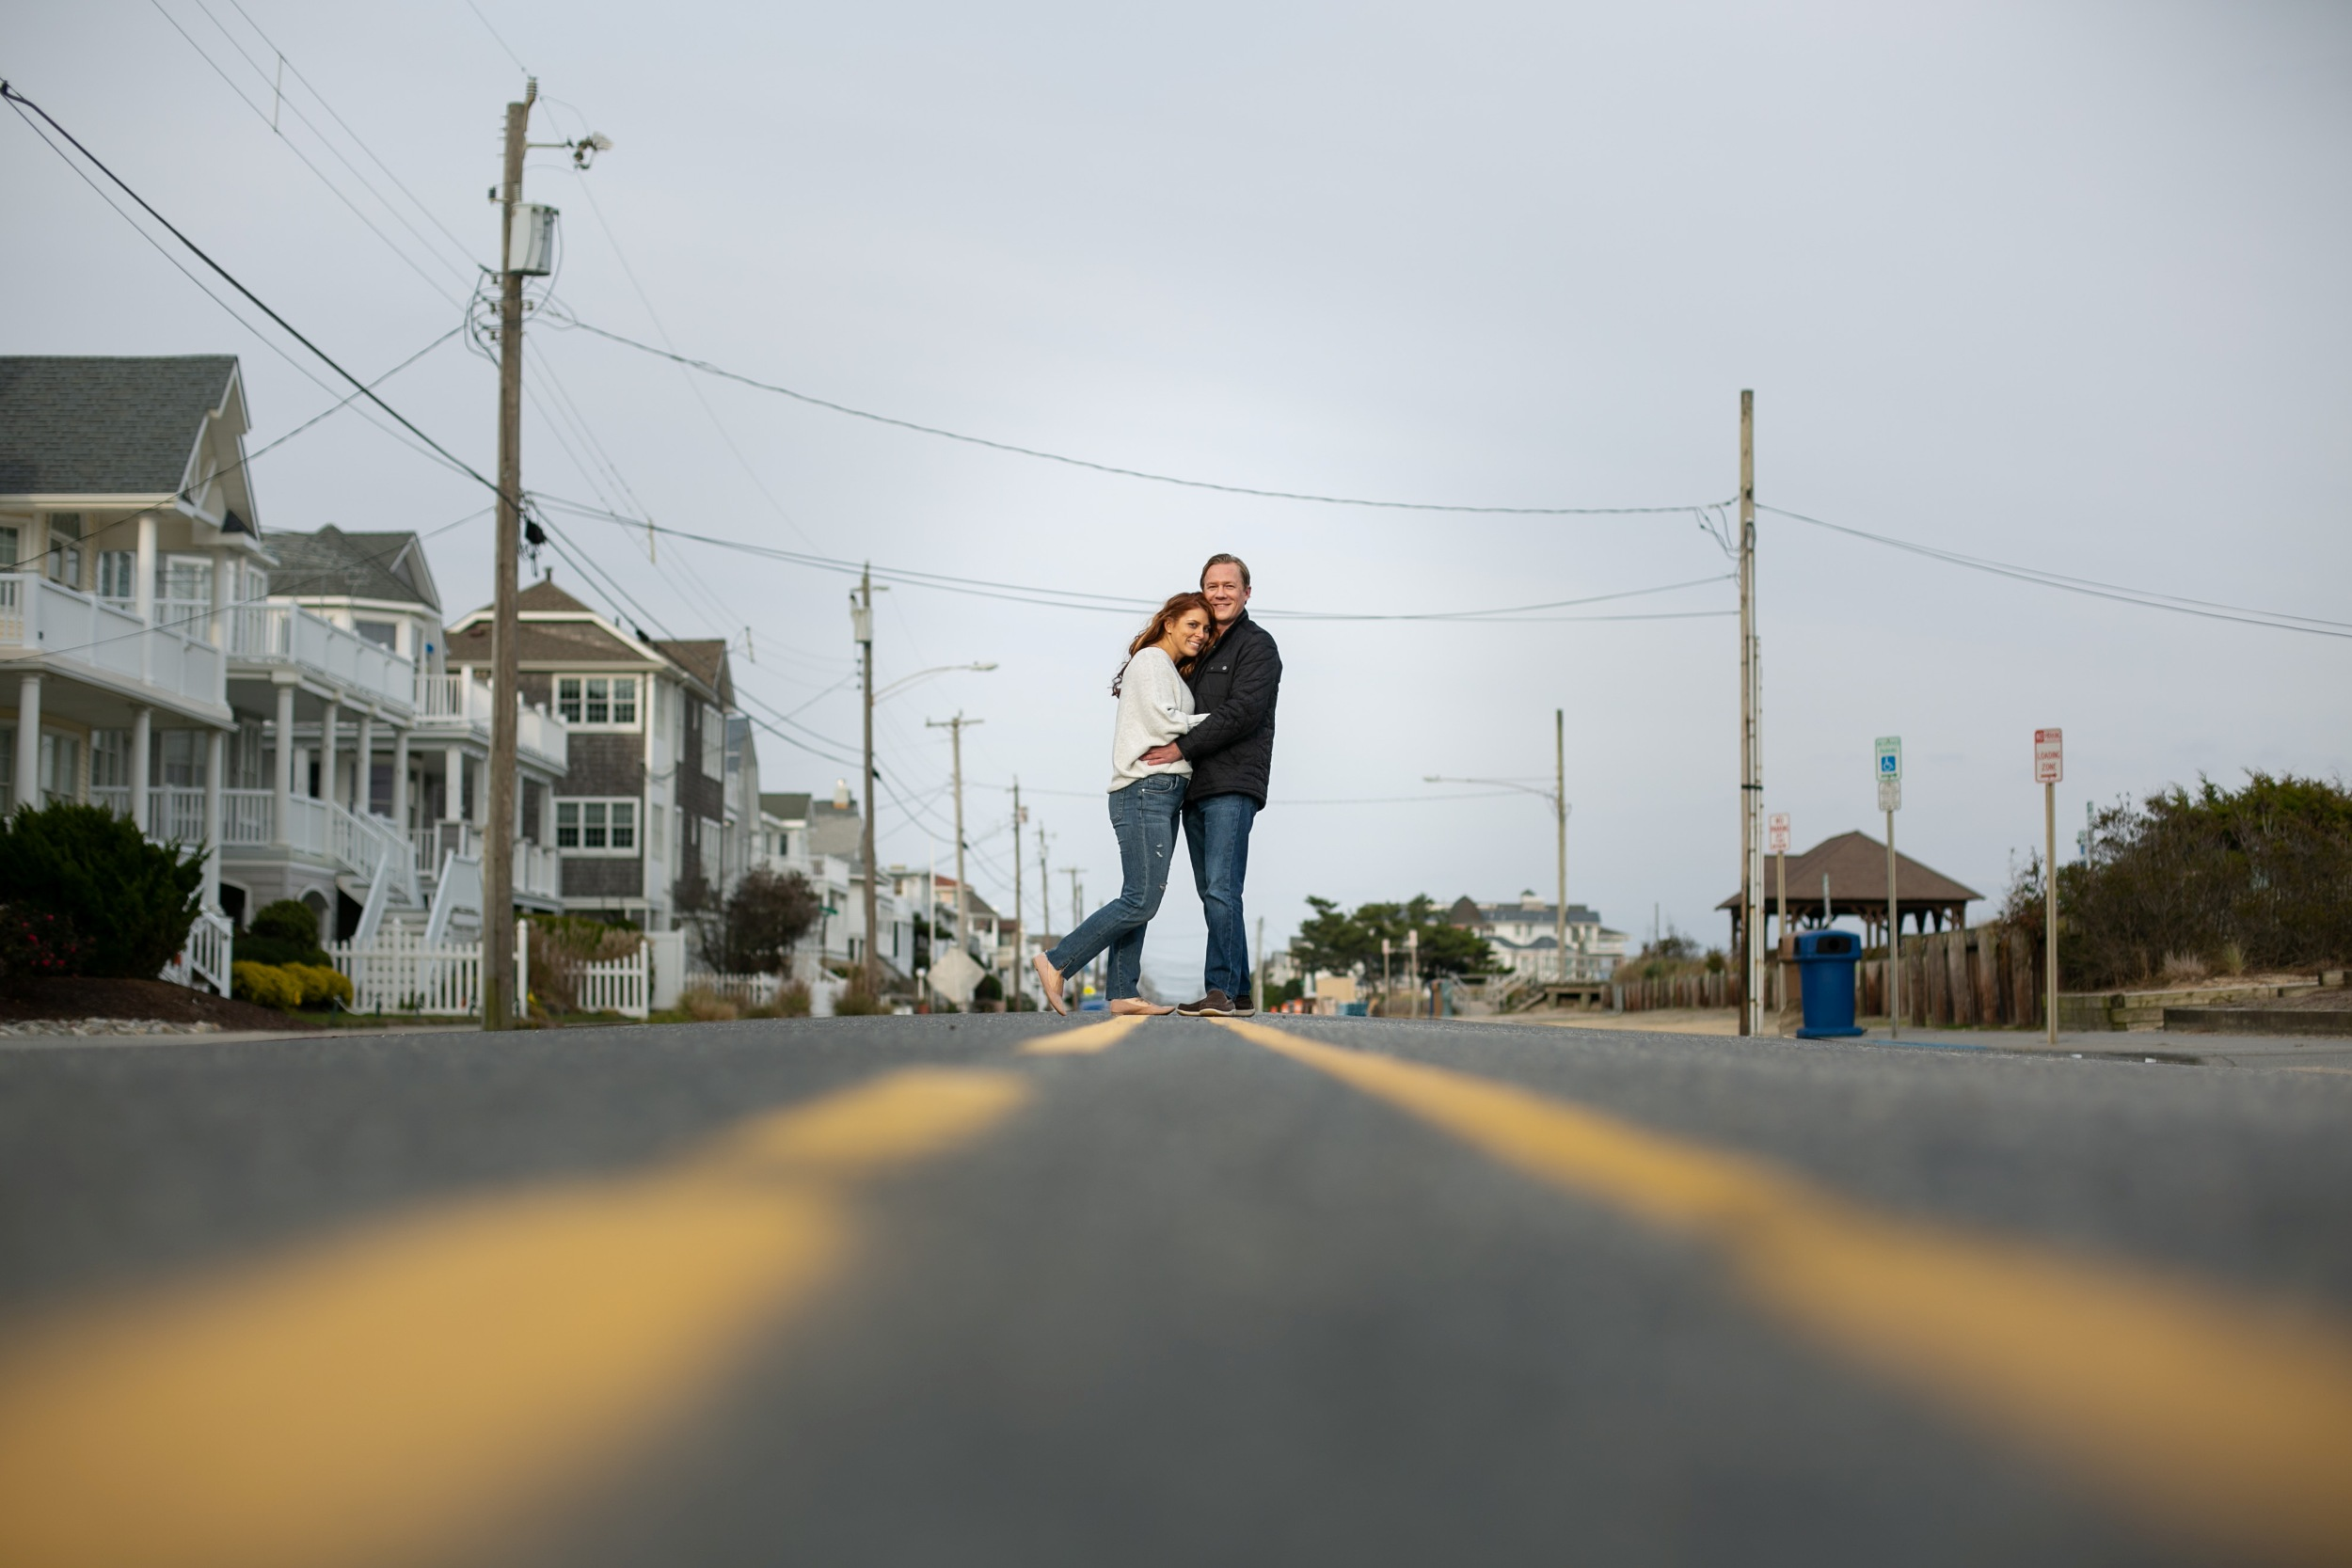 everly tuckahoe ocean city engagement photos  (138 of 139)138.jpg